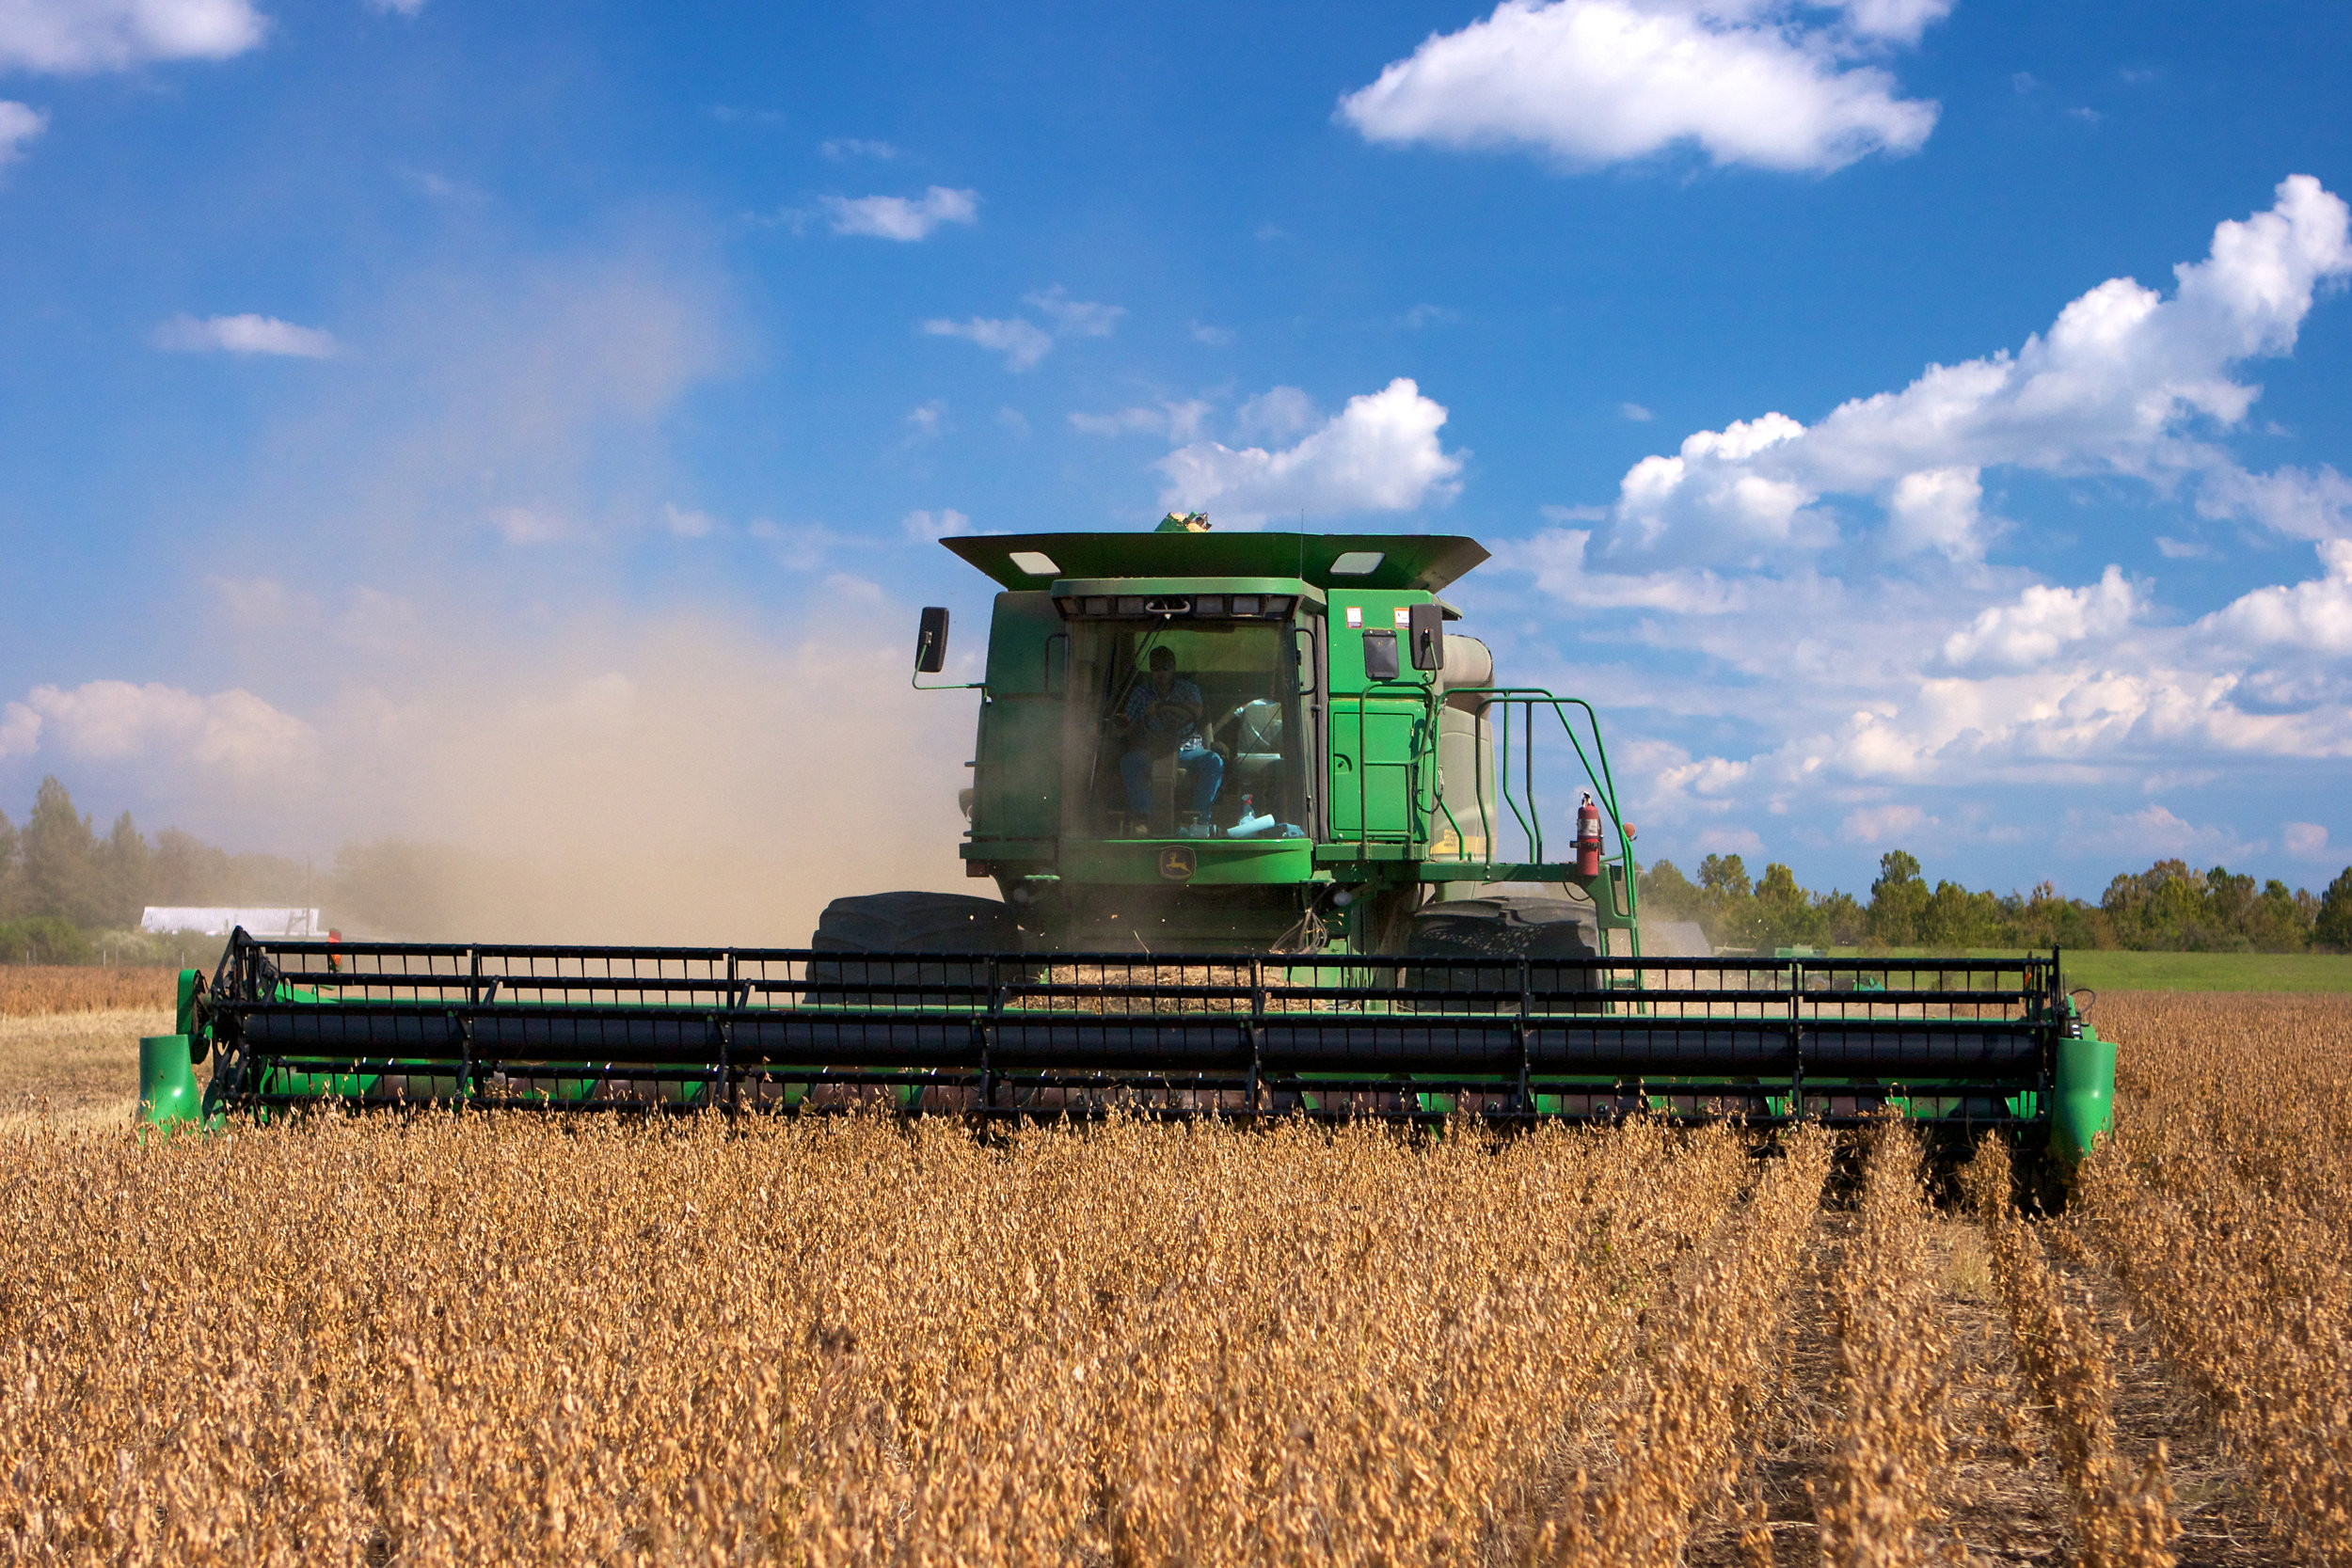 SquarespaceImage19-soybeans-harvesting.jpg